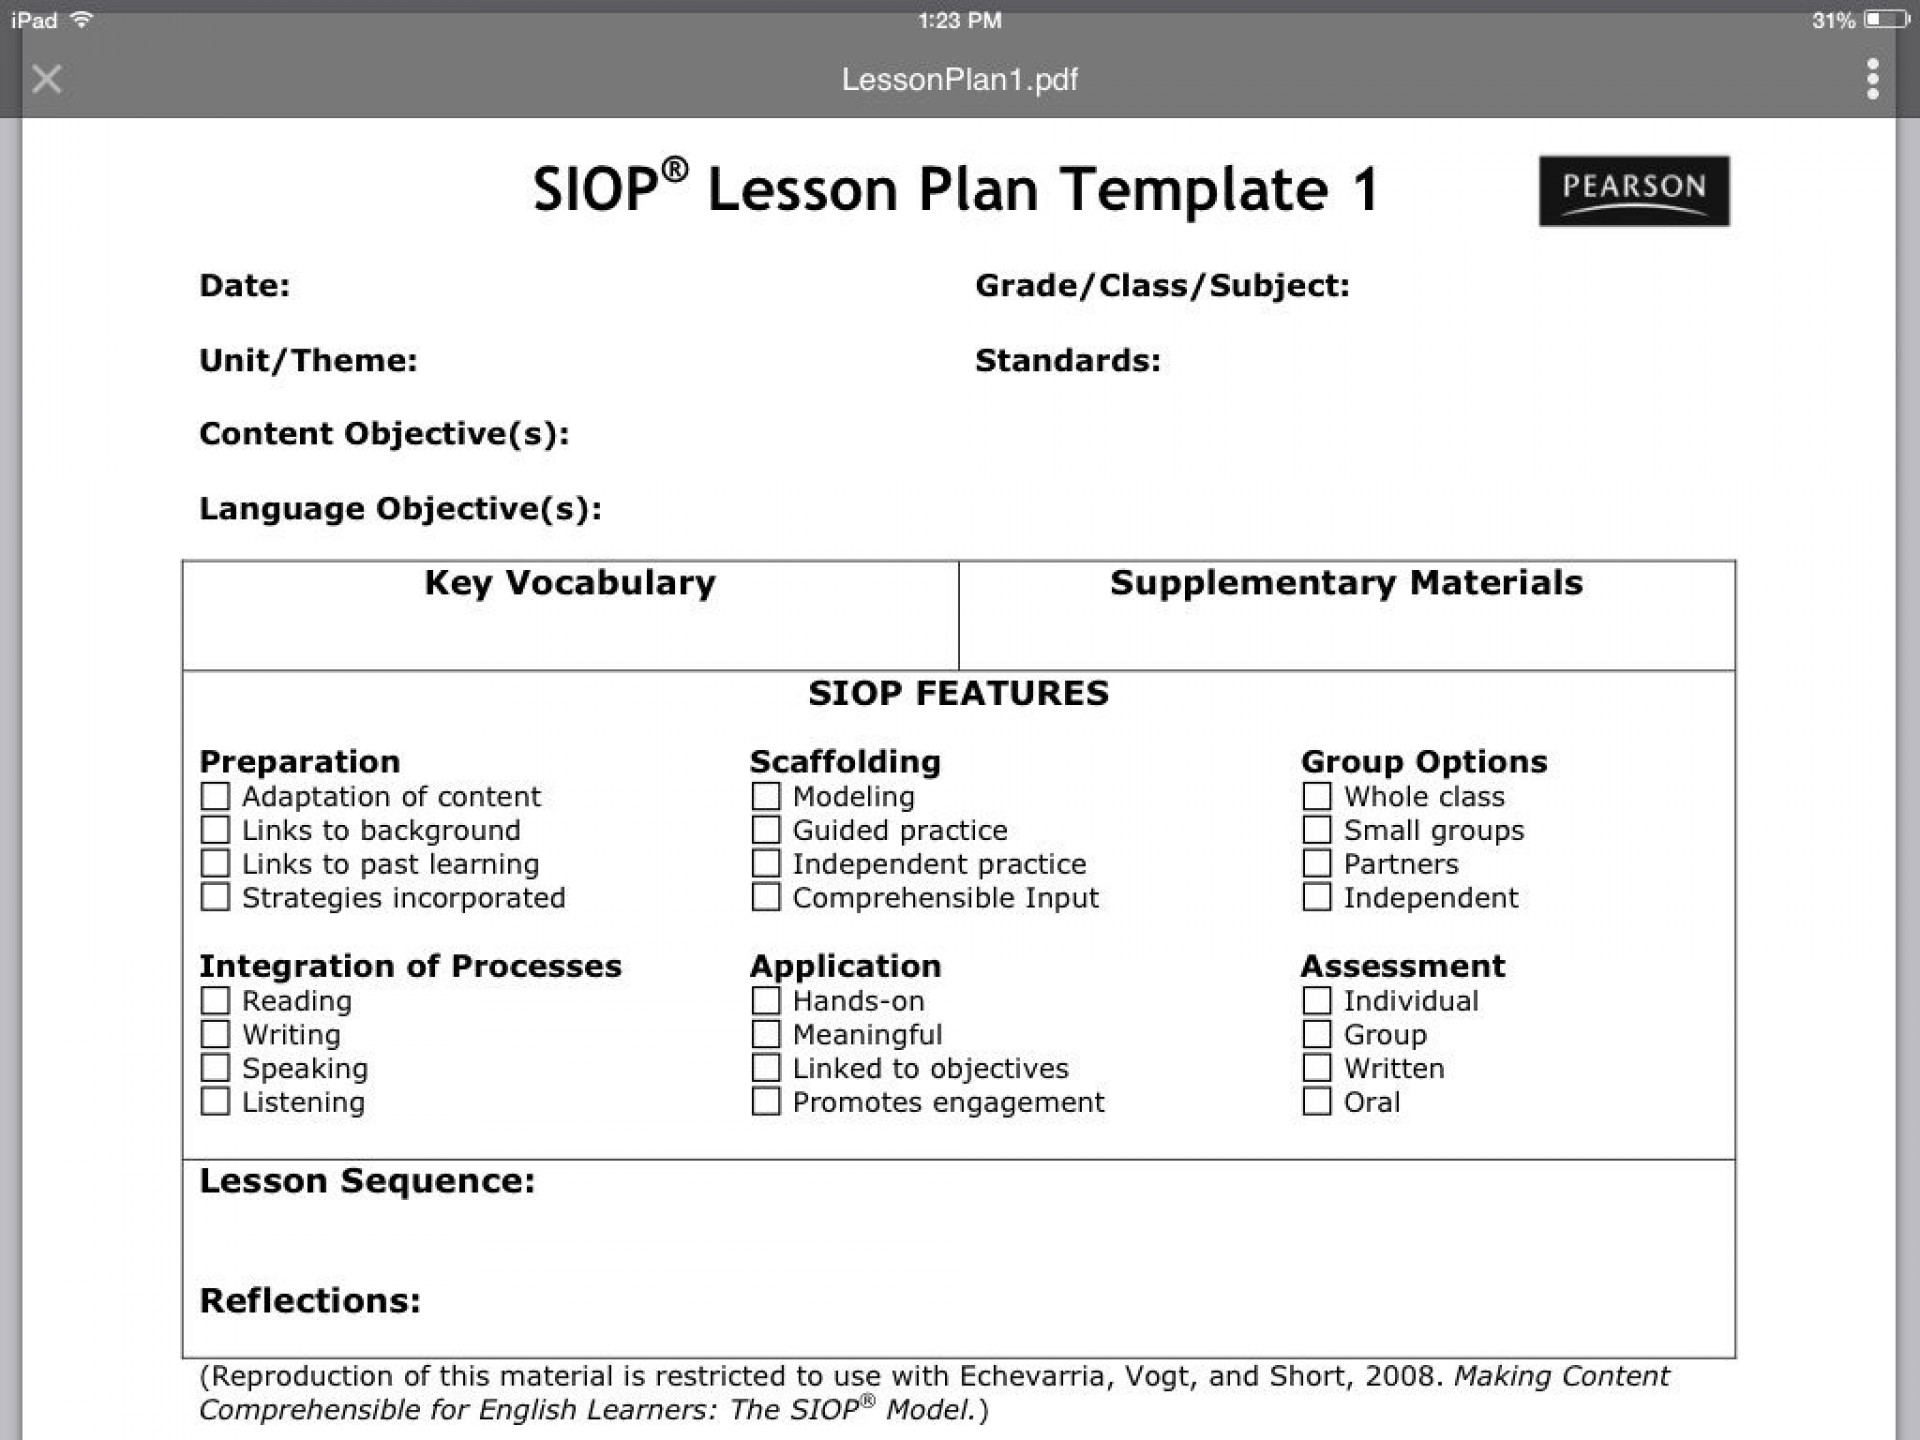 003 Awesome Siop Lesson Plan Template 1 Example High Def 1920